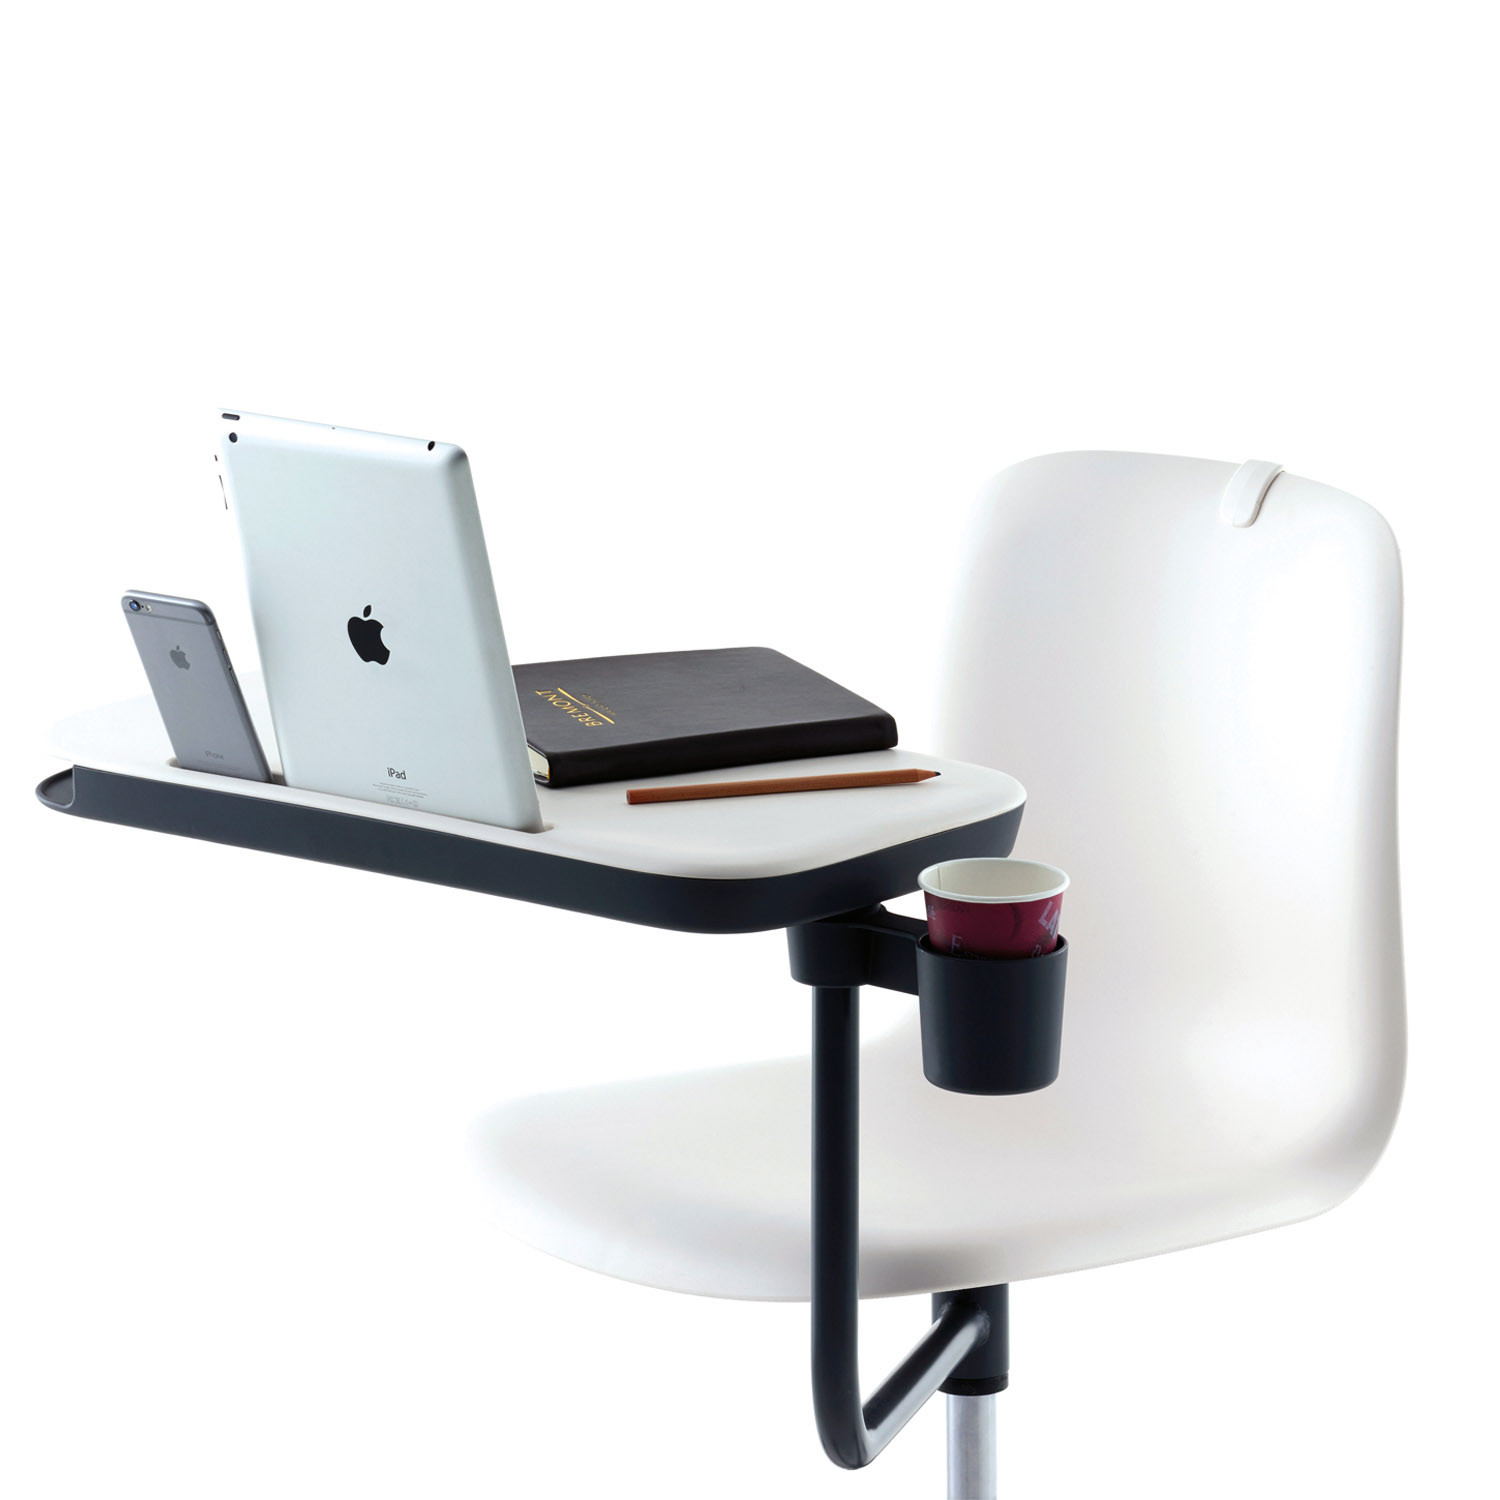 SixE Optional Tablet with Chair